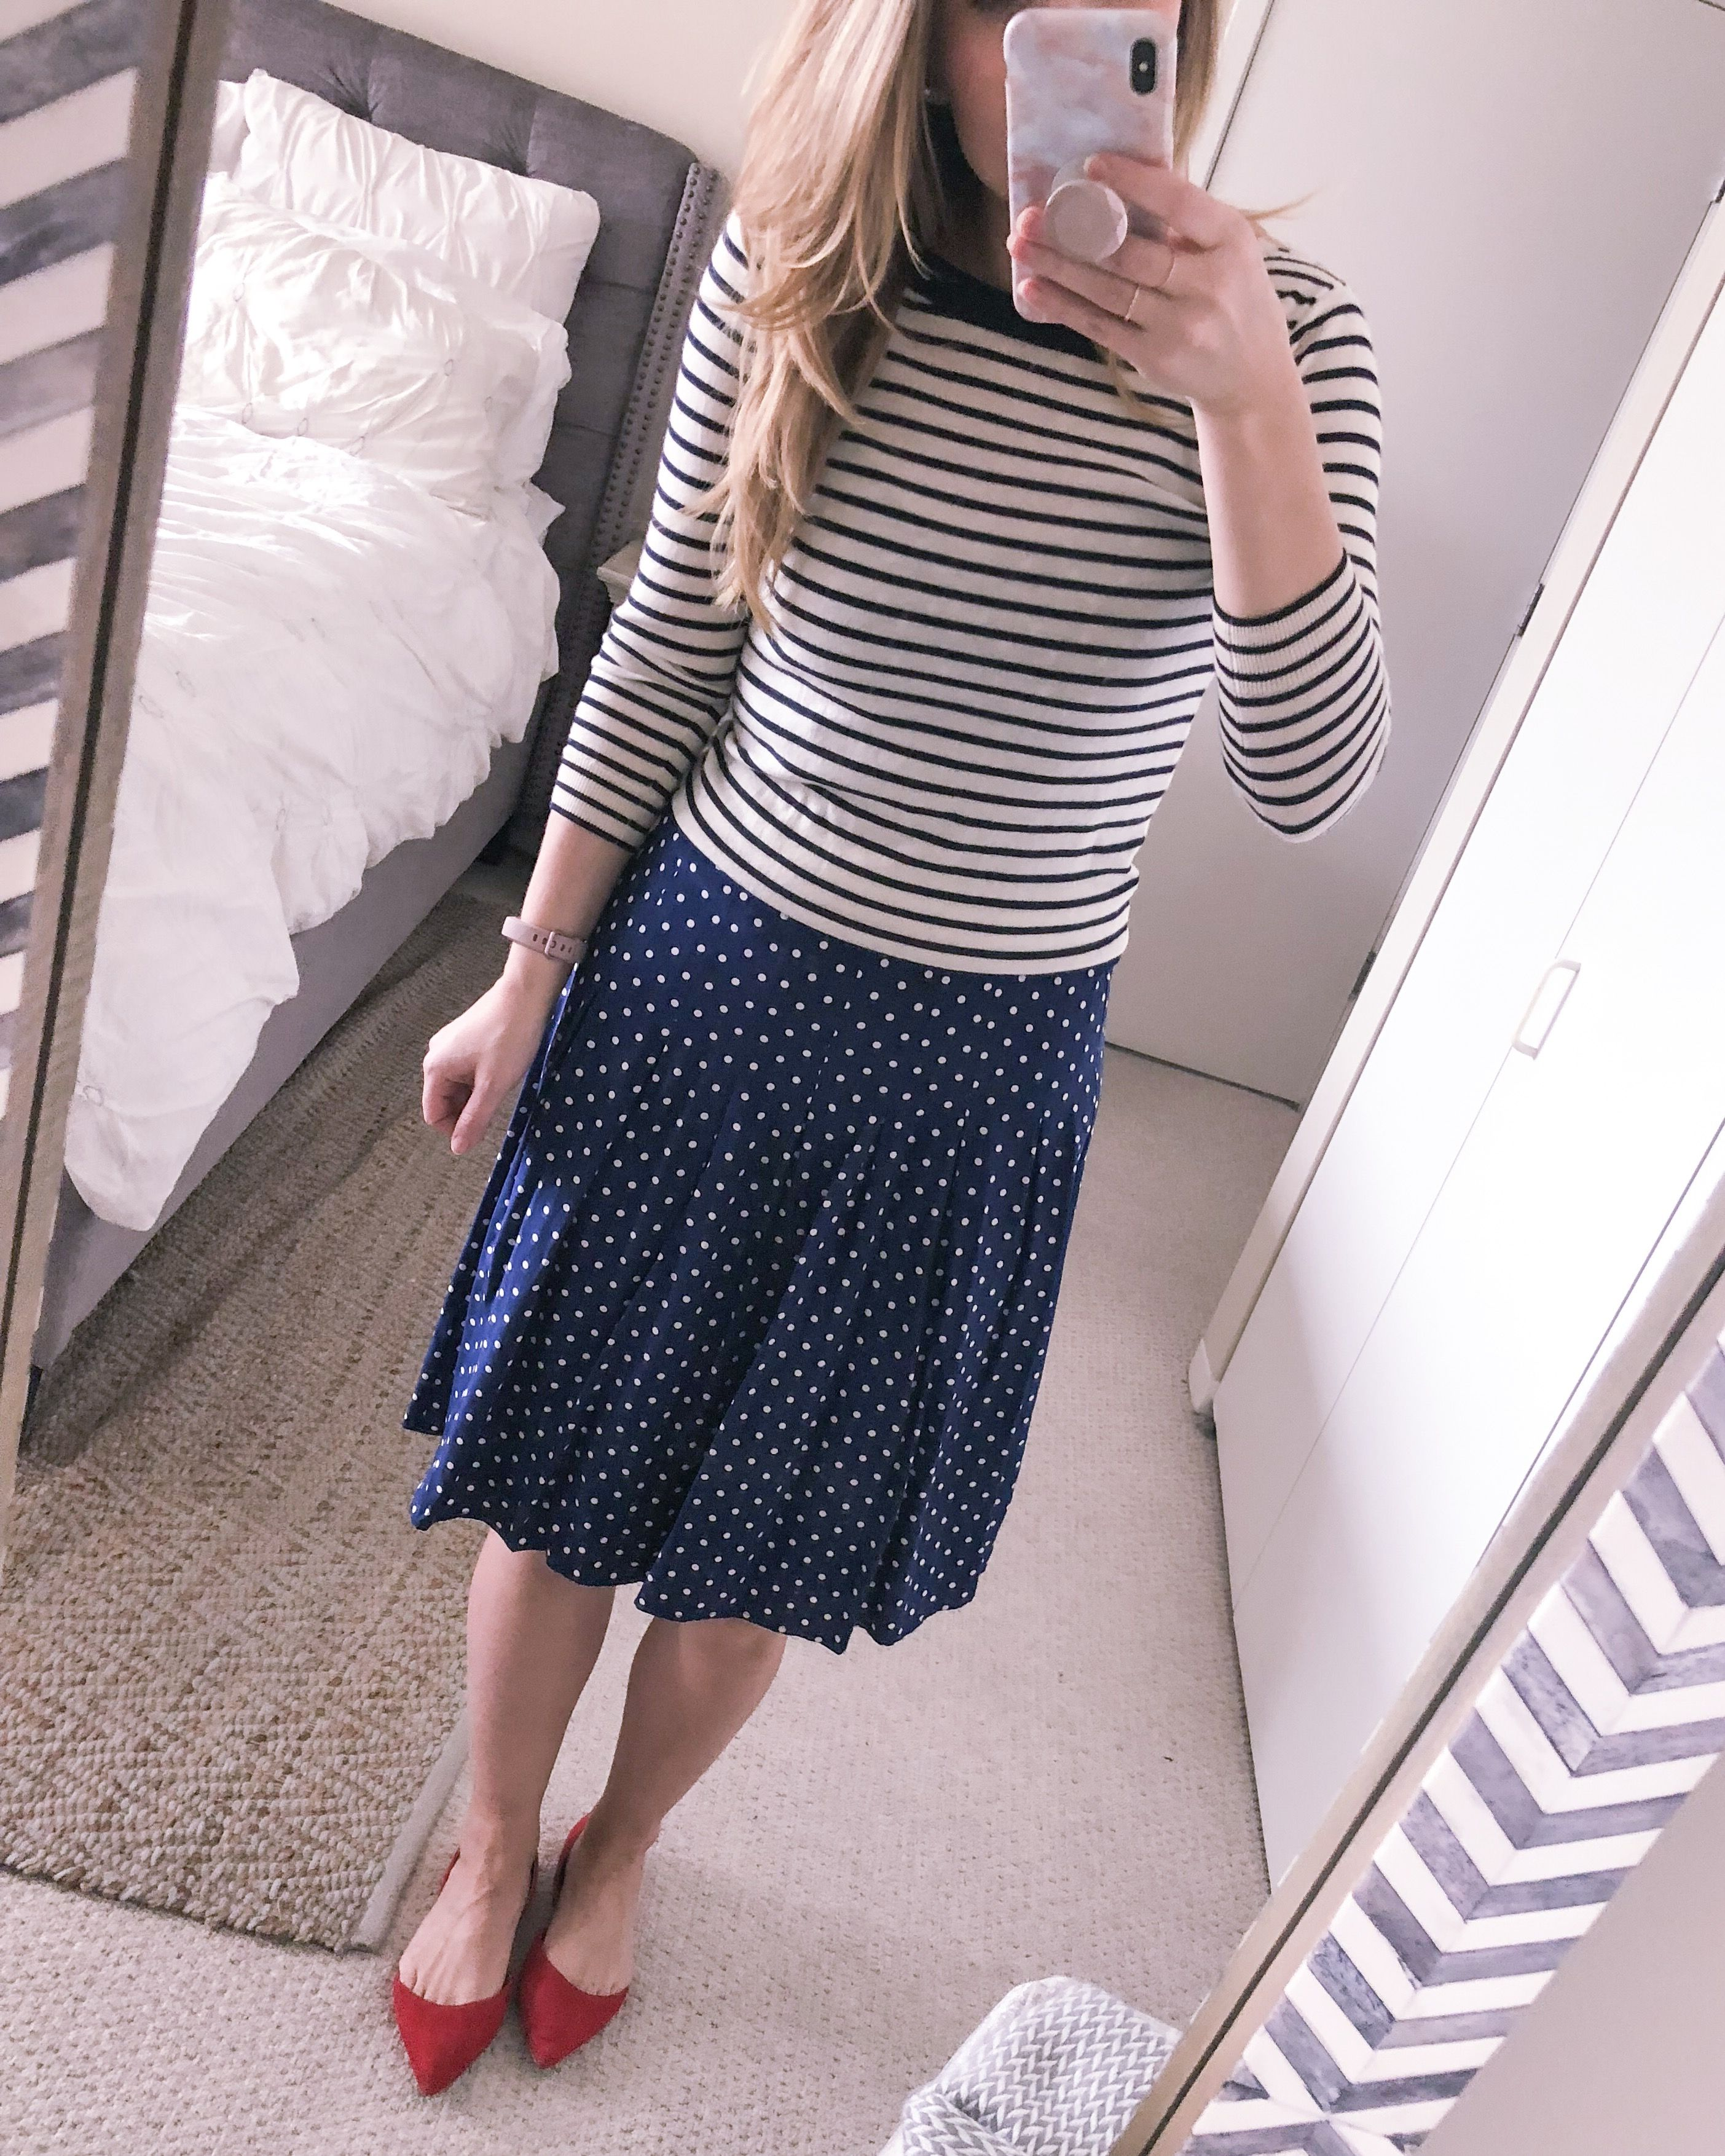 ebab1d15b6 Popular Chicago style blogger Visions of Vogue shares how to style a polka  dot dress multiple